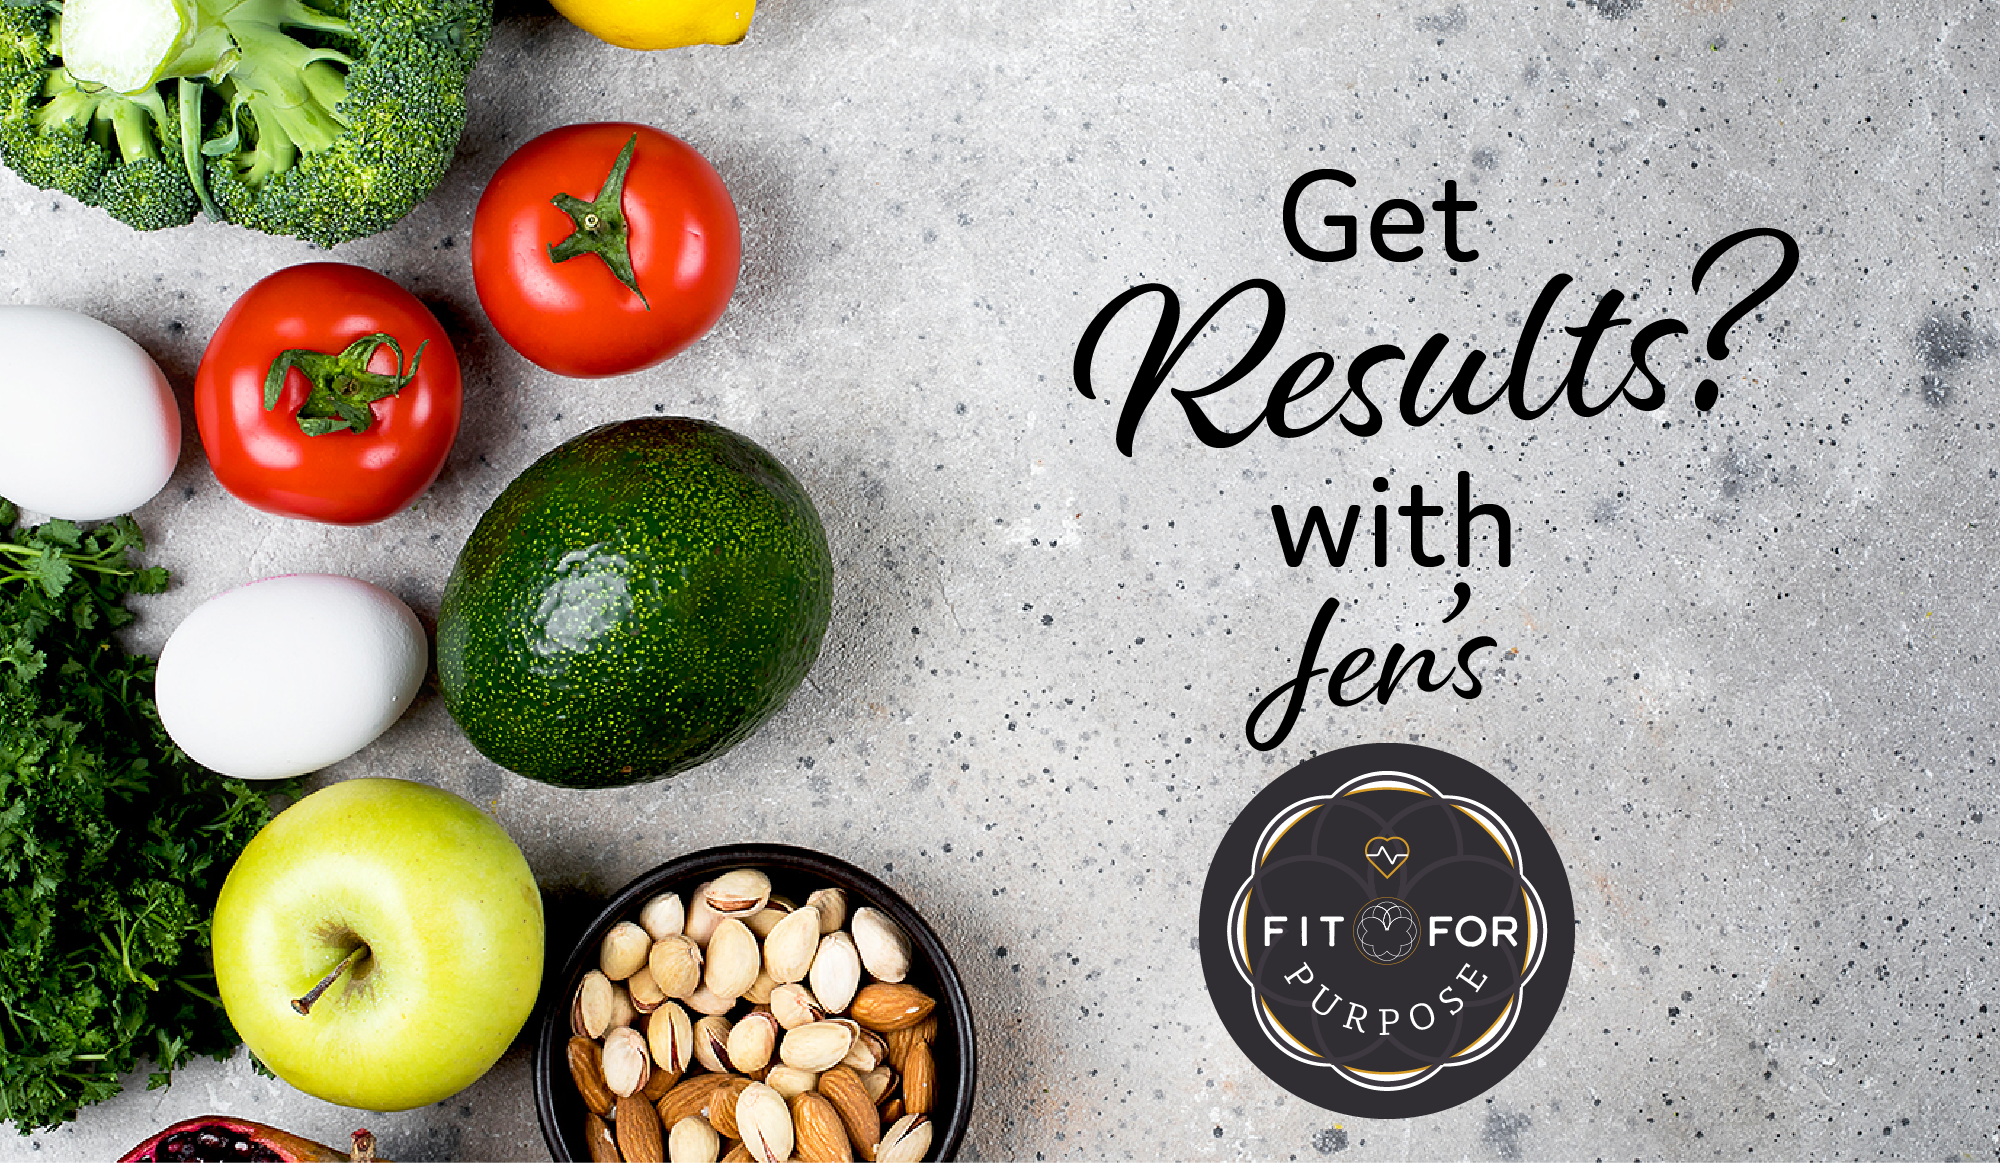 jens-fit-for-purpose-nutrition-01